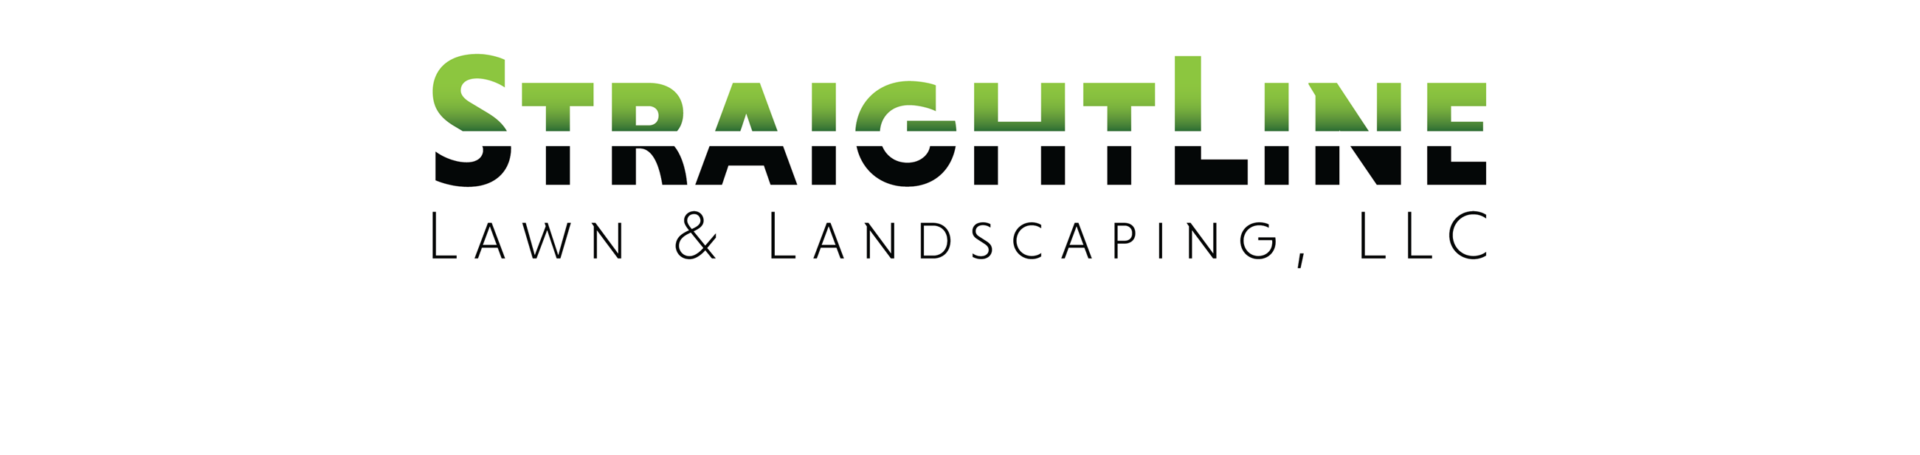 StraightLine Lawn & Landscaping